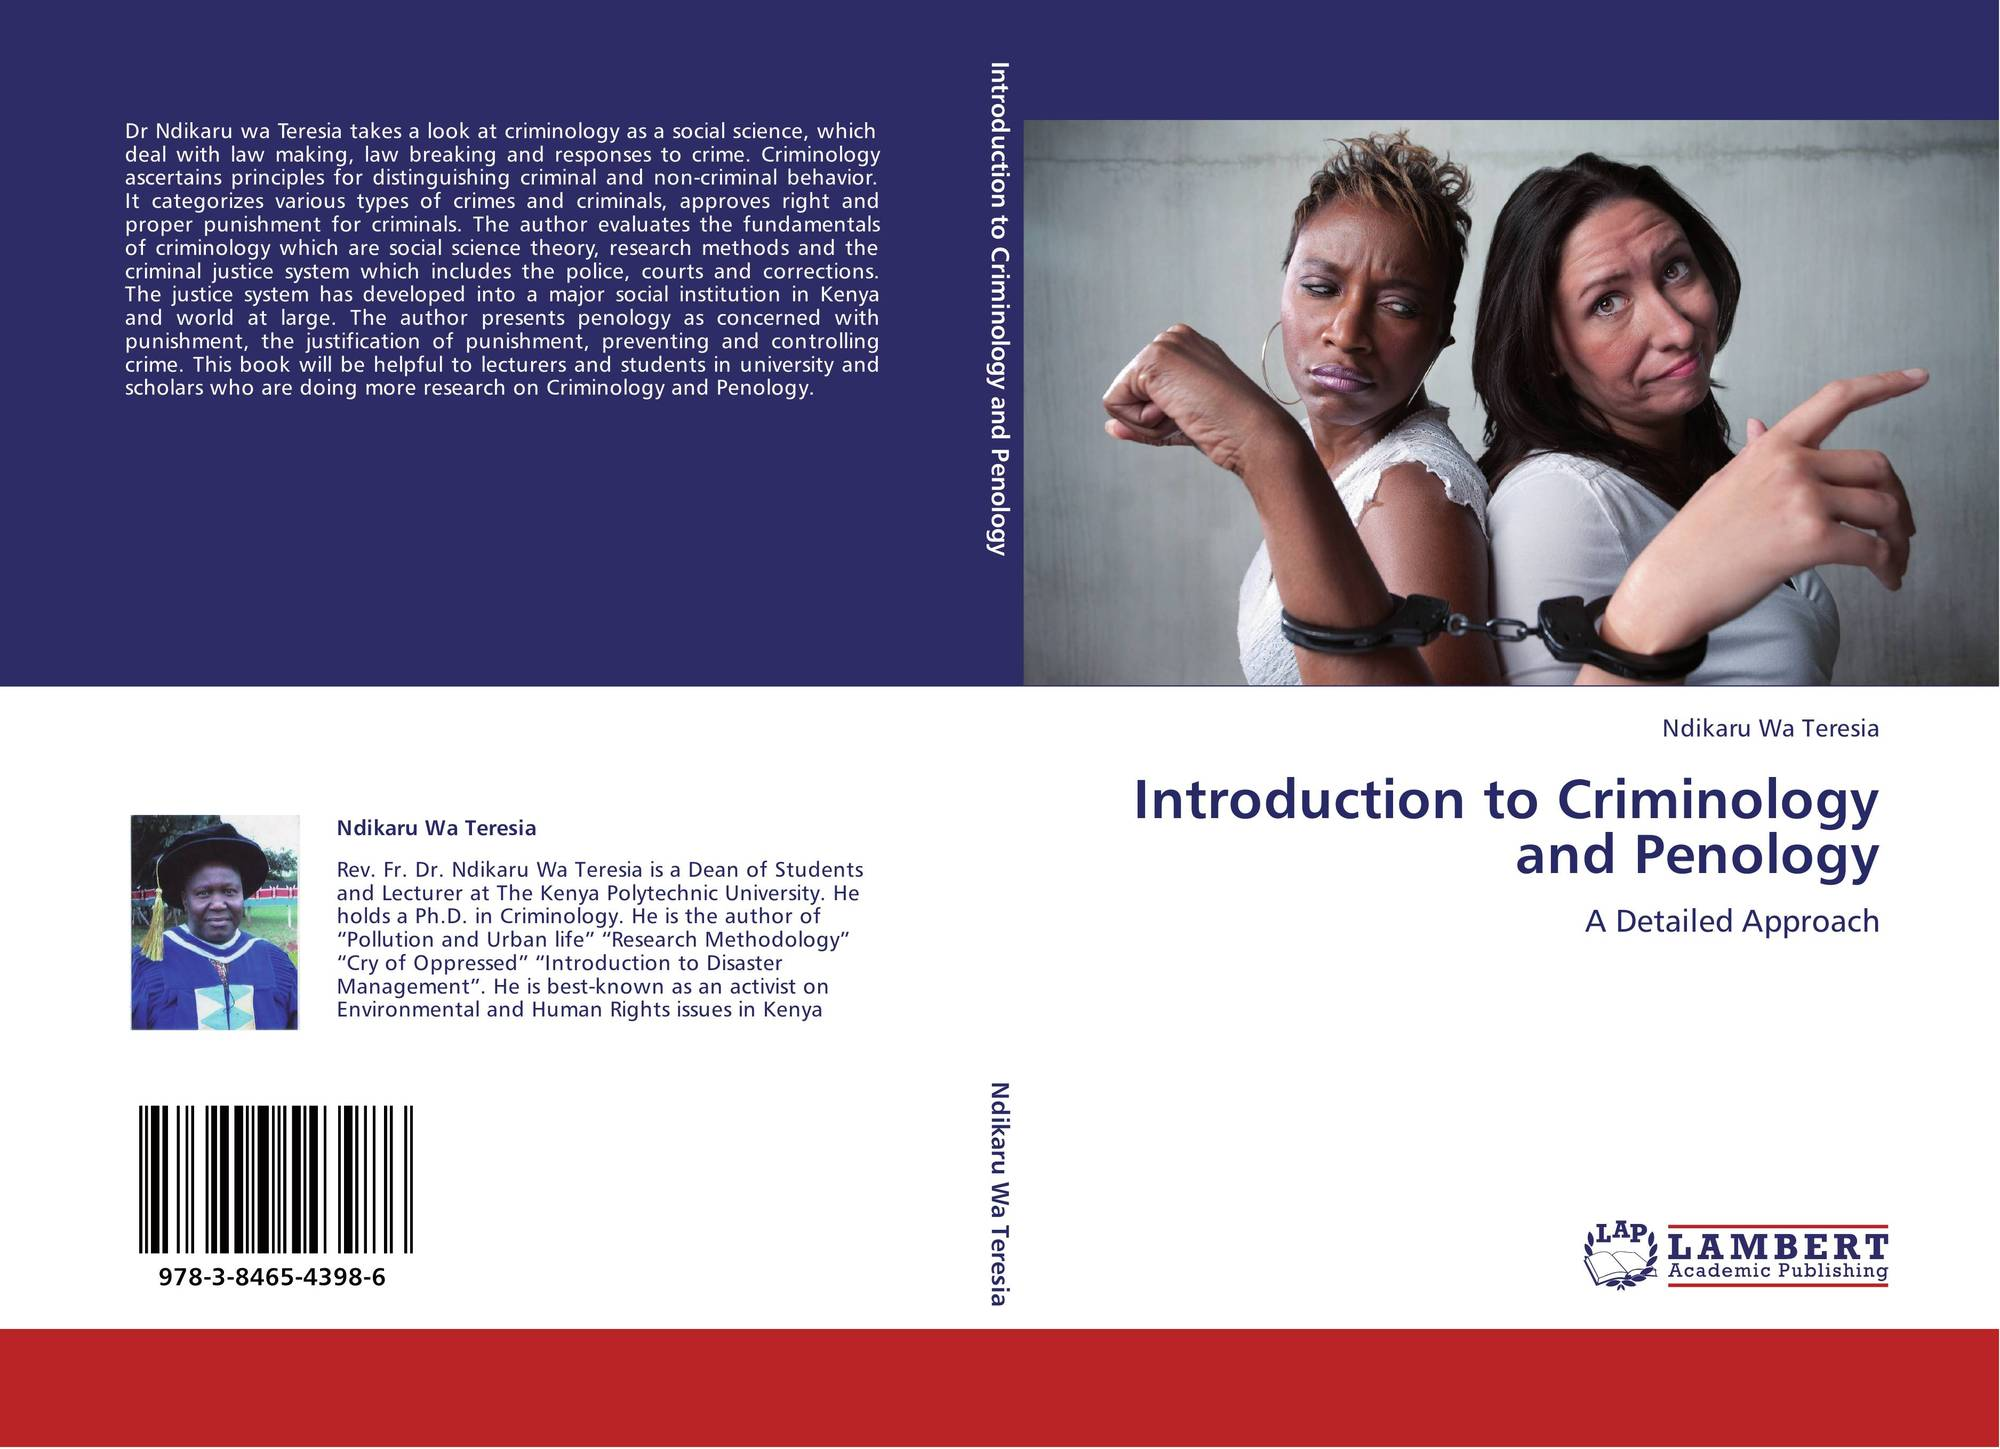 intro to research methods criminology Articles published in seven leading criminology and criminal justice journals were coded with regard to the research methods used, focusing on the general research.